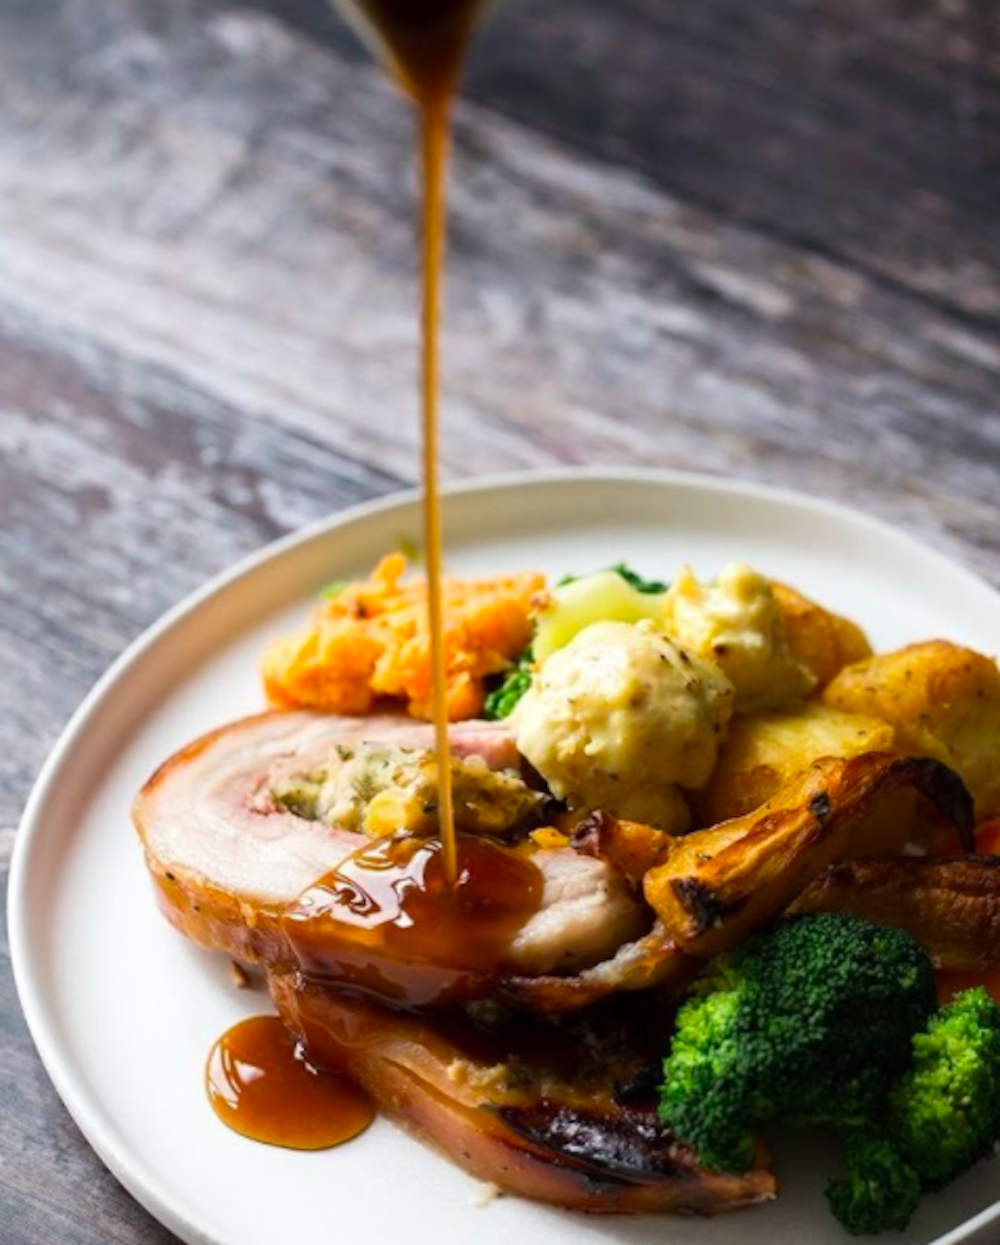 Plate with sunday dinner with gravy pouring on top